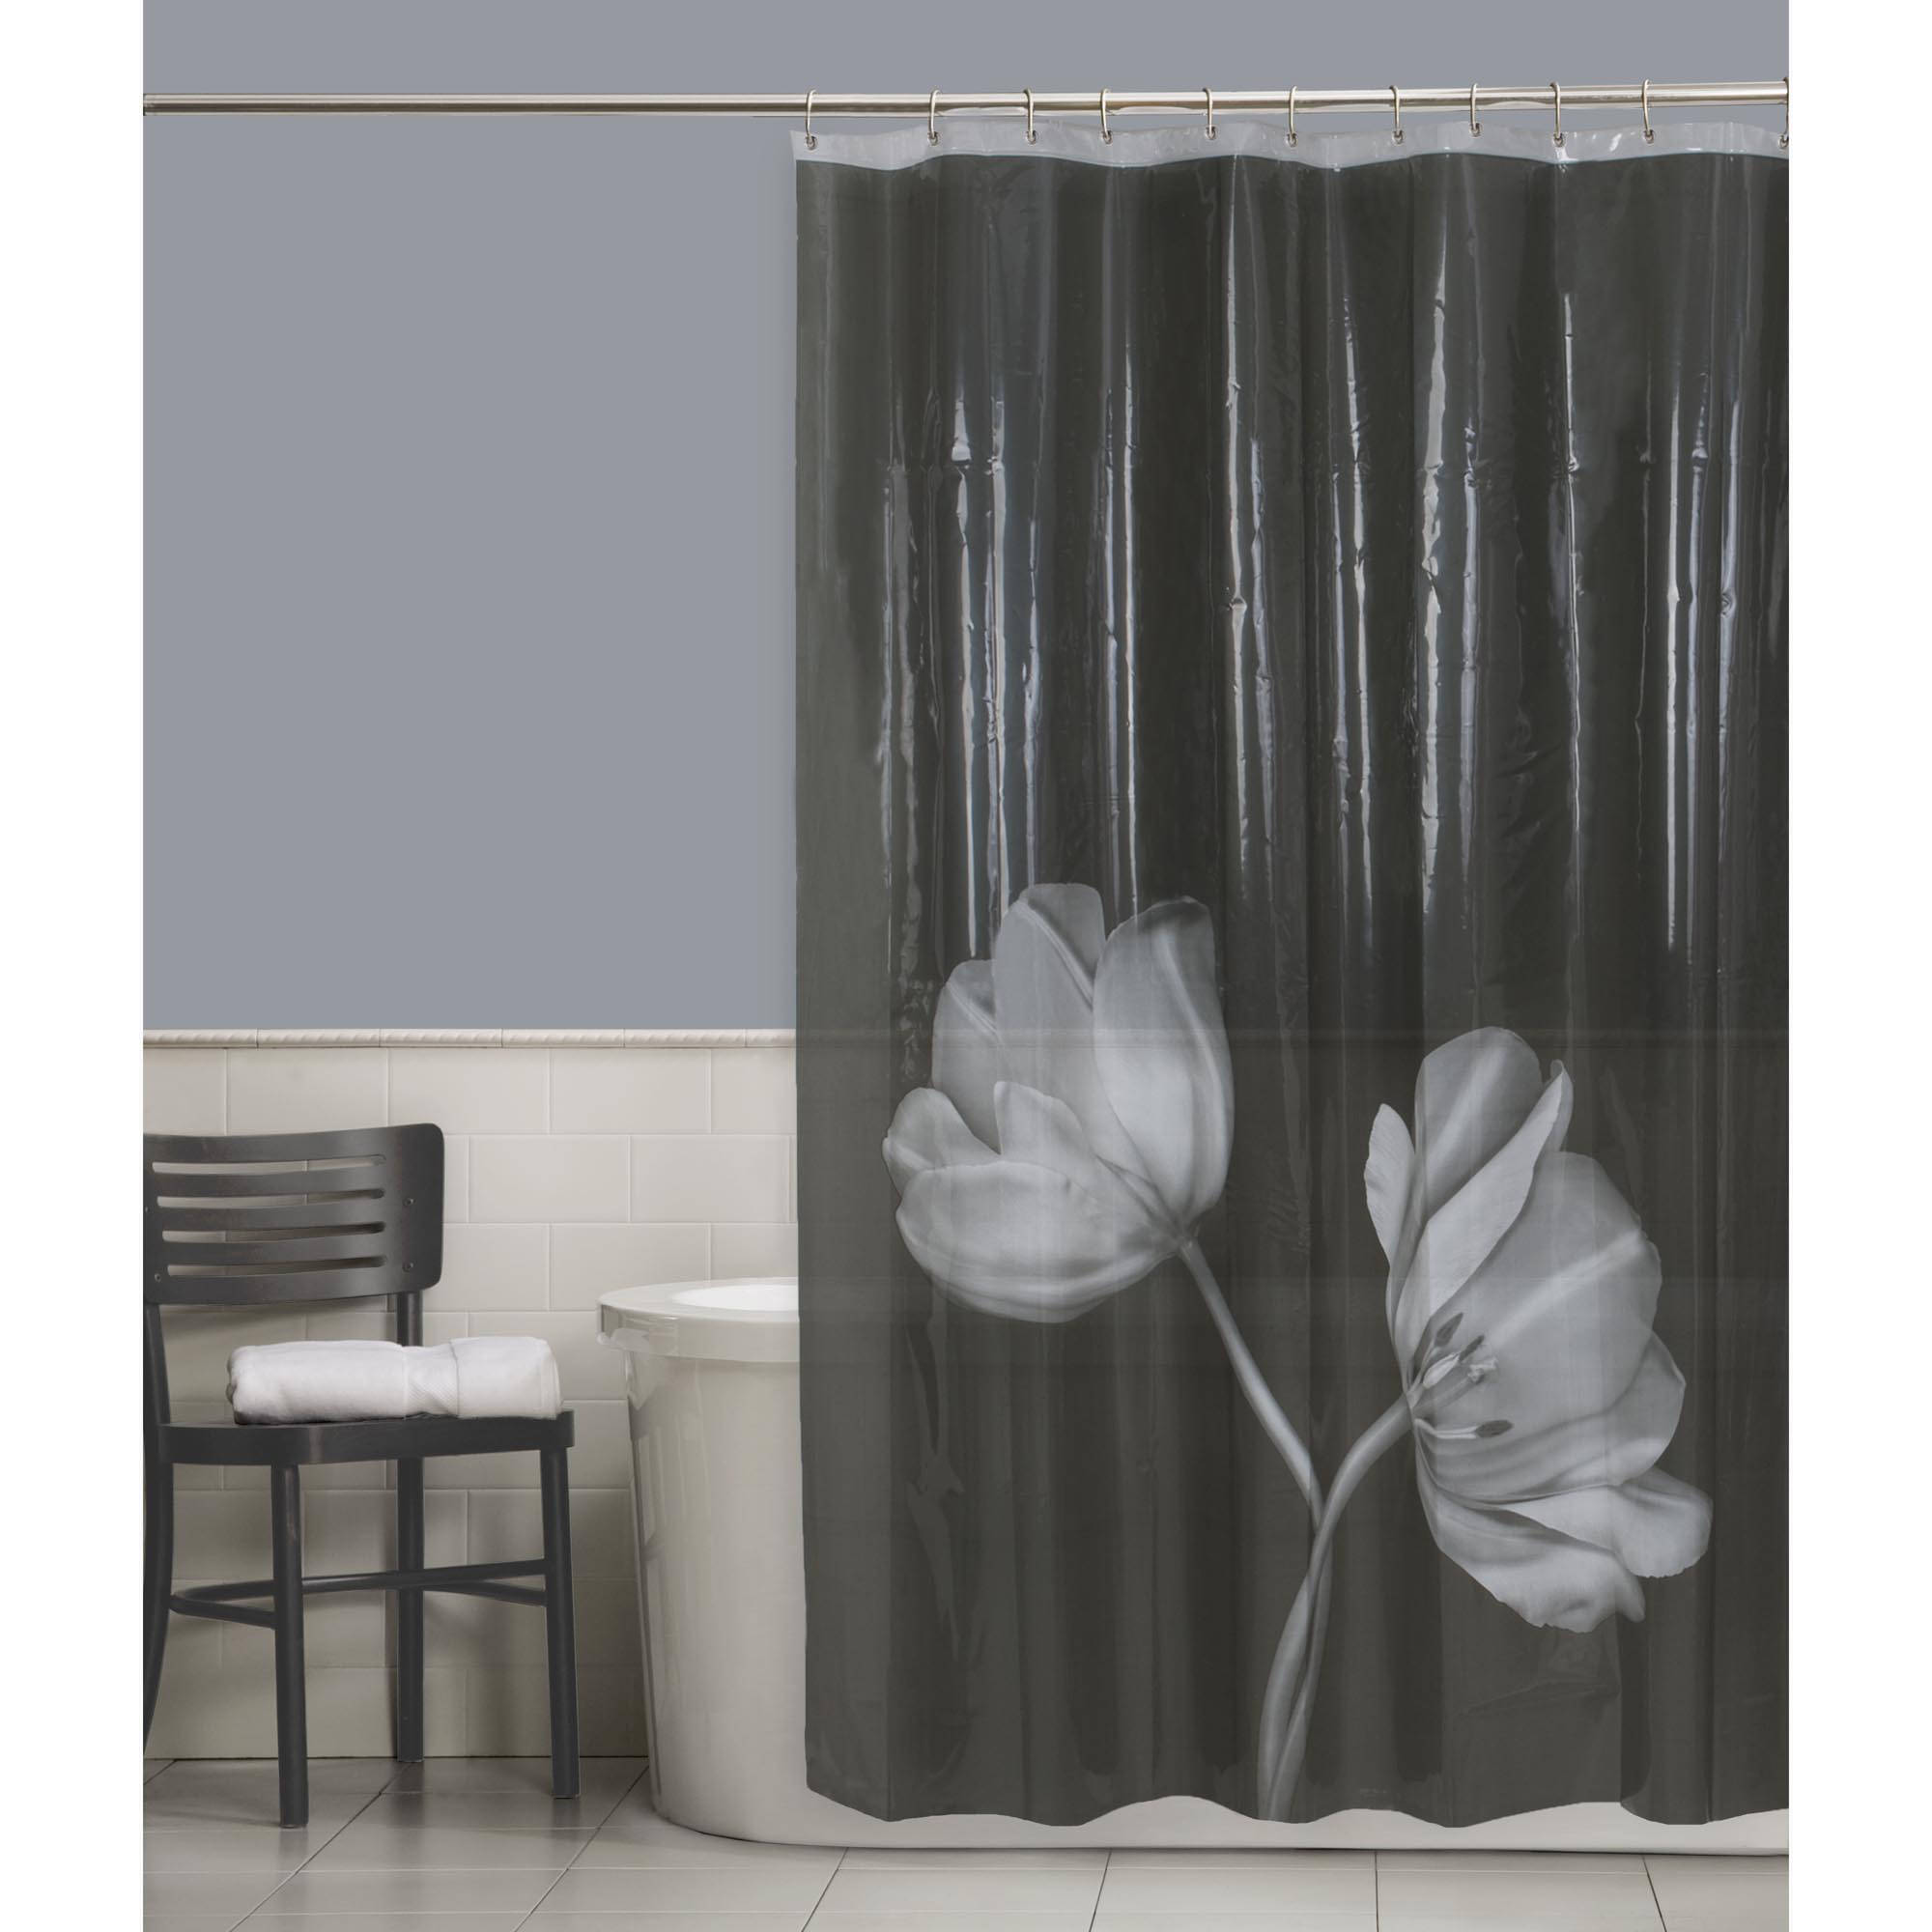 Maytex Tulip PEVA Vinyl Shower Curtain, Black - Walmart.com